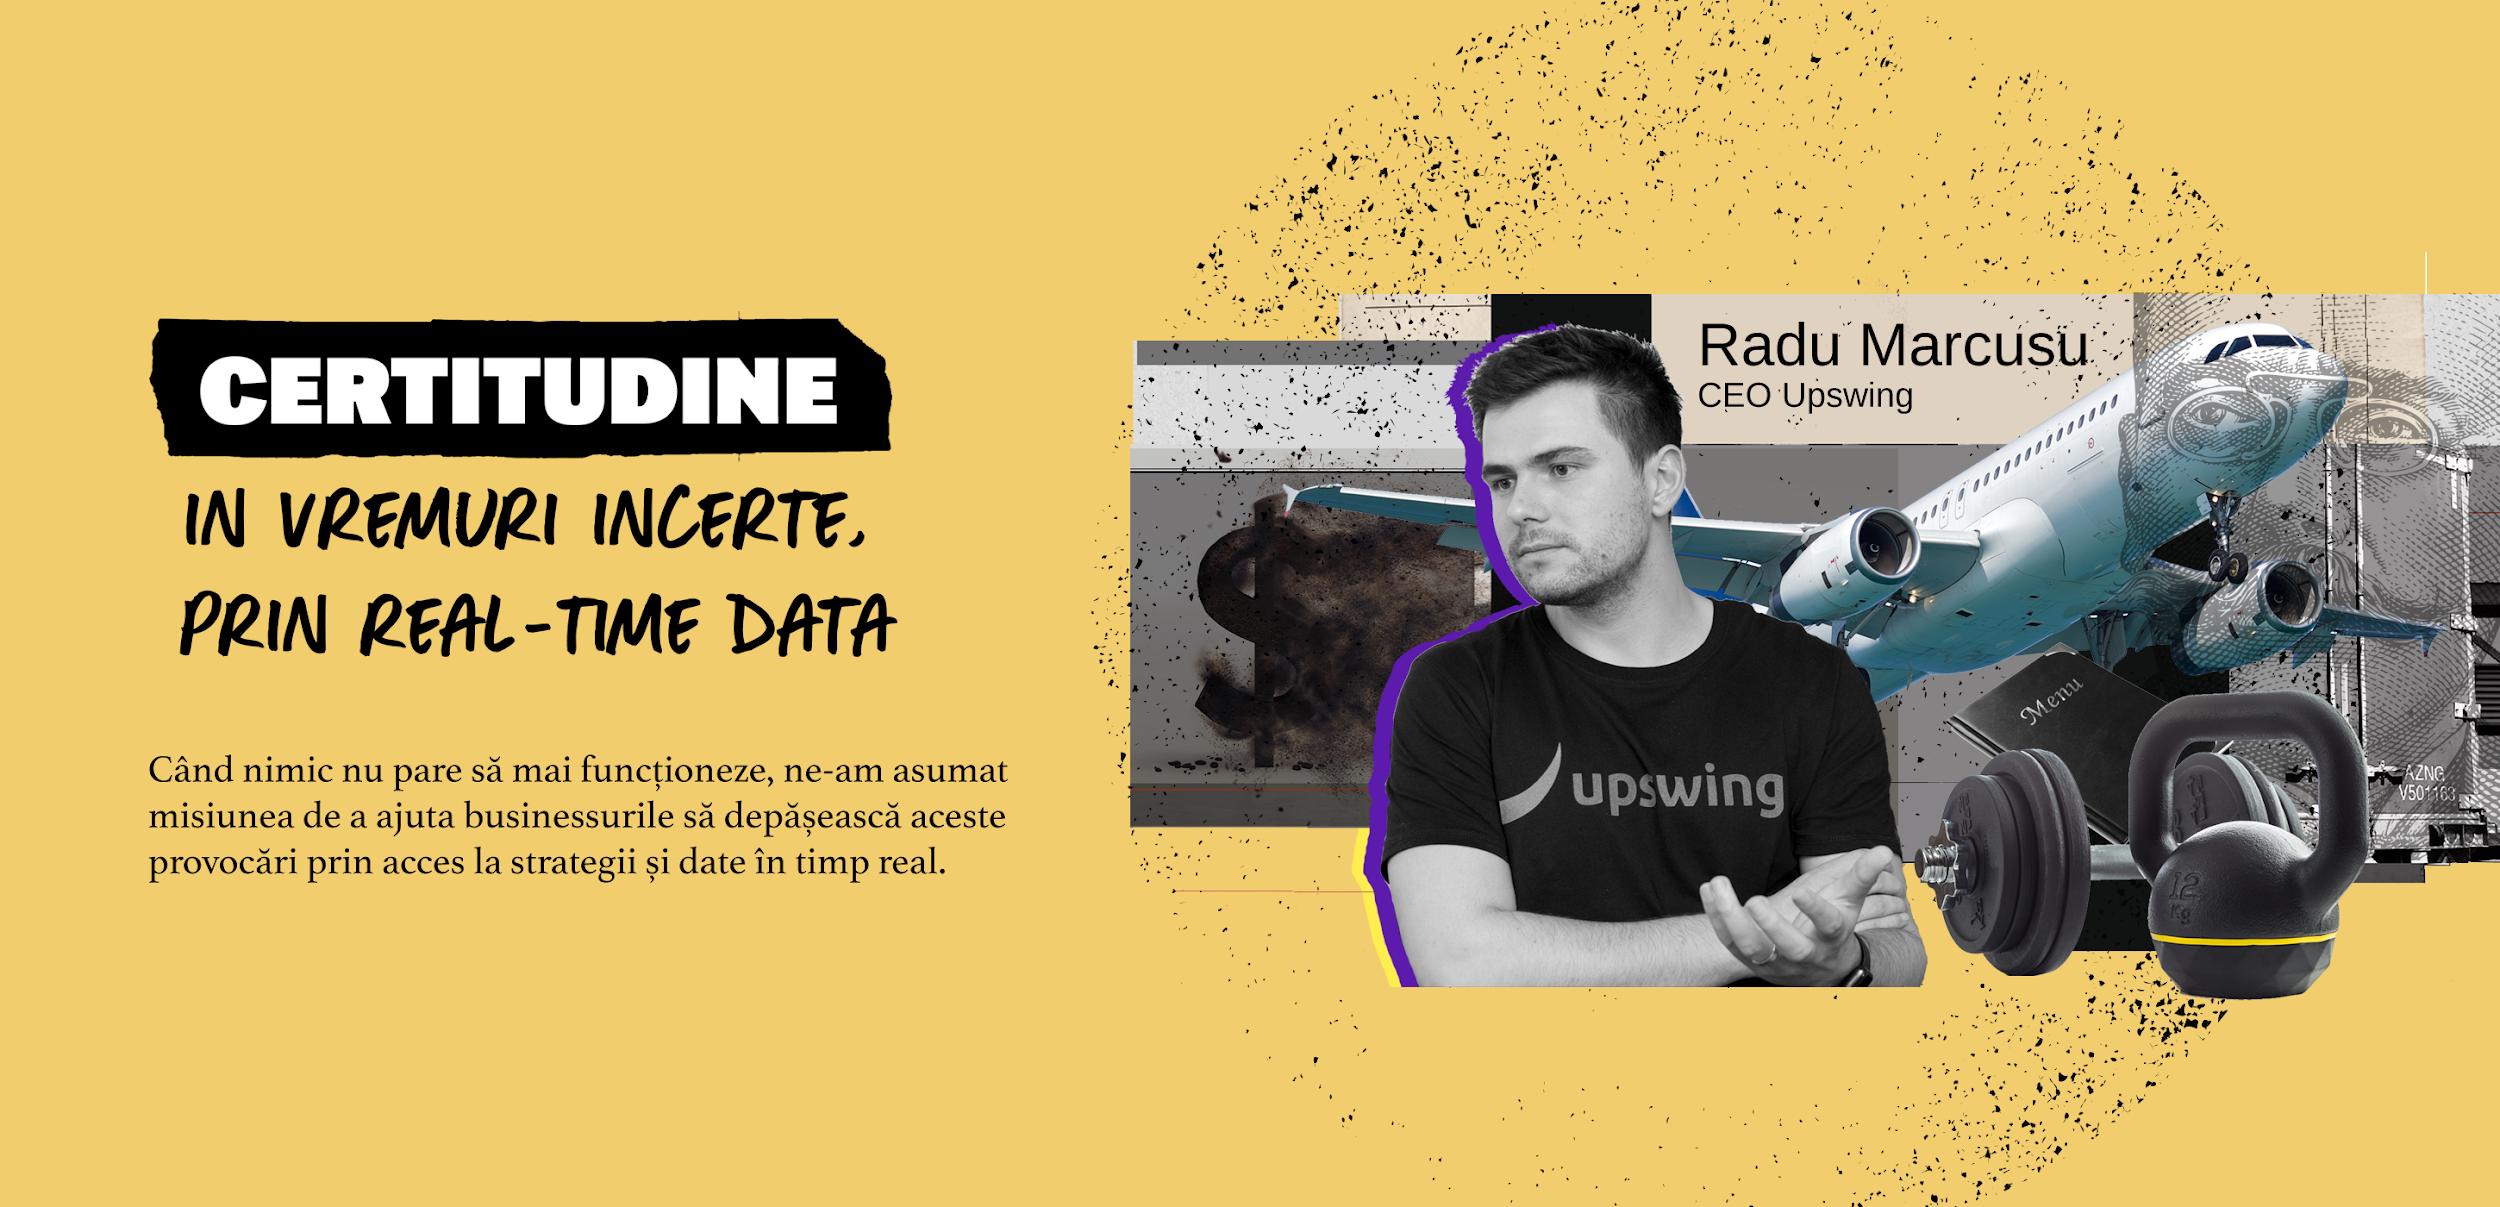 Webinar: Radu Marcusu, CEO Upswing aduce certitudine in vremuri incerte, prin date in timp real